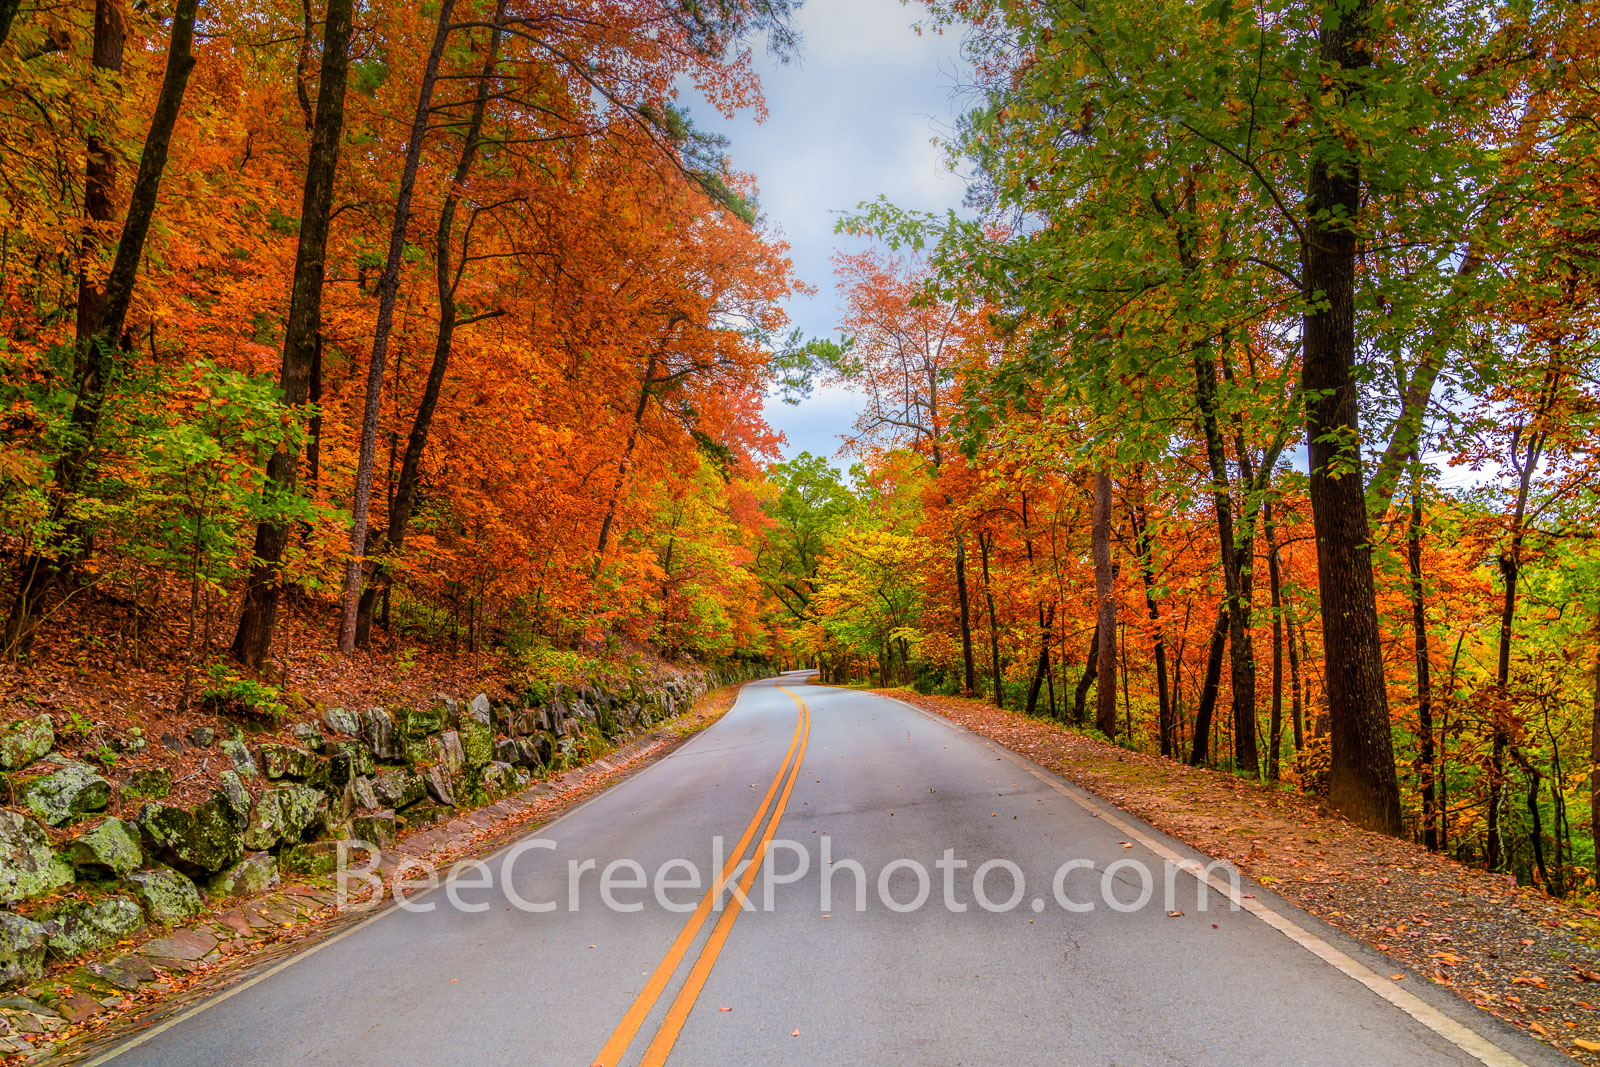 Fall Roadside Colors  - We came looking for scenic autumn foliage this fall to see some color and we hit the jackpot in Arkansas...